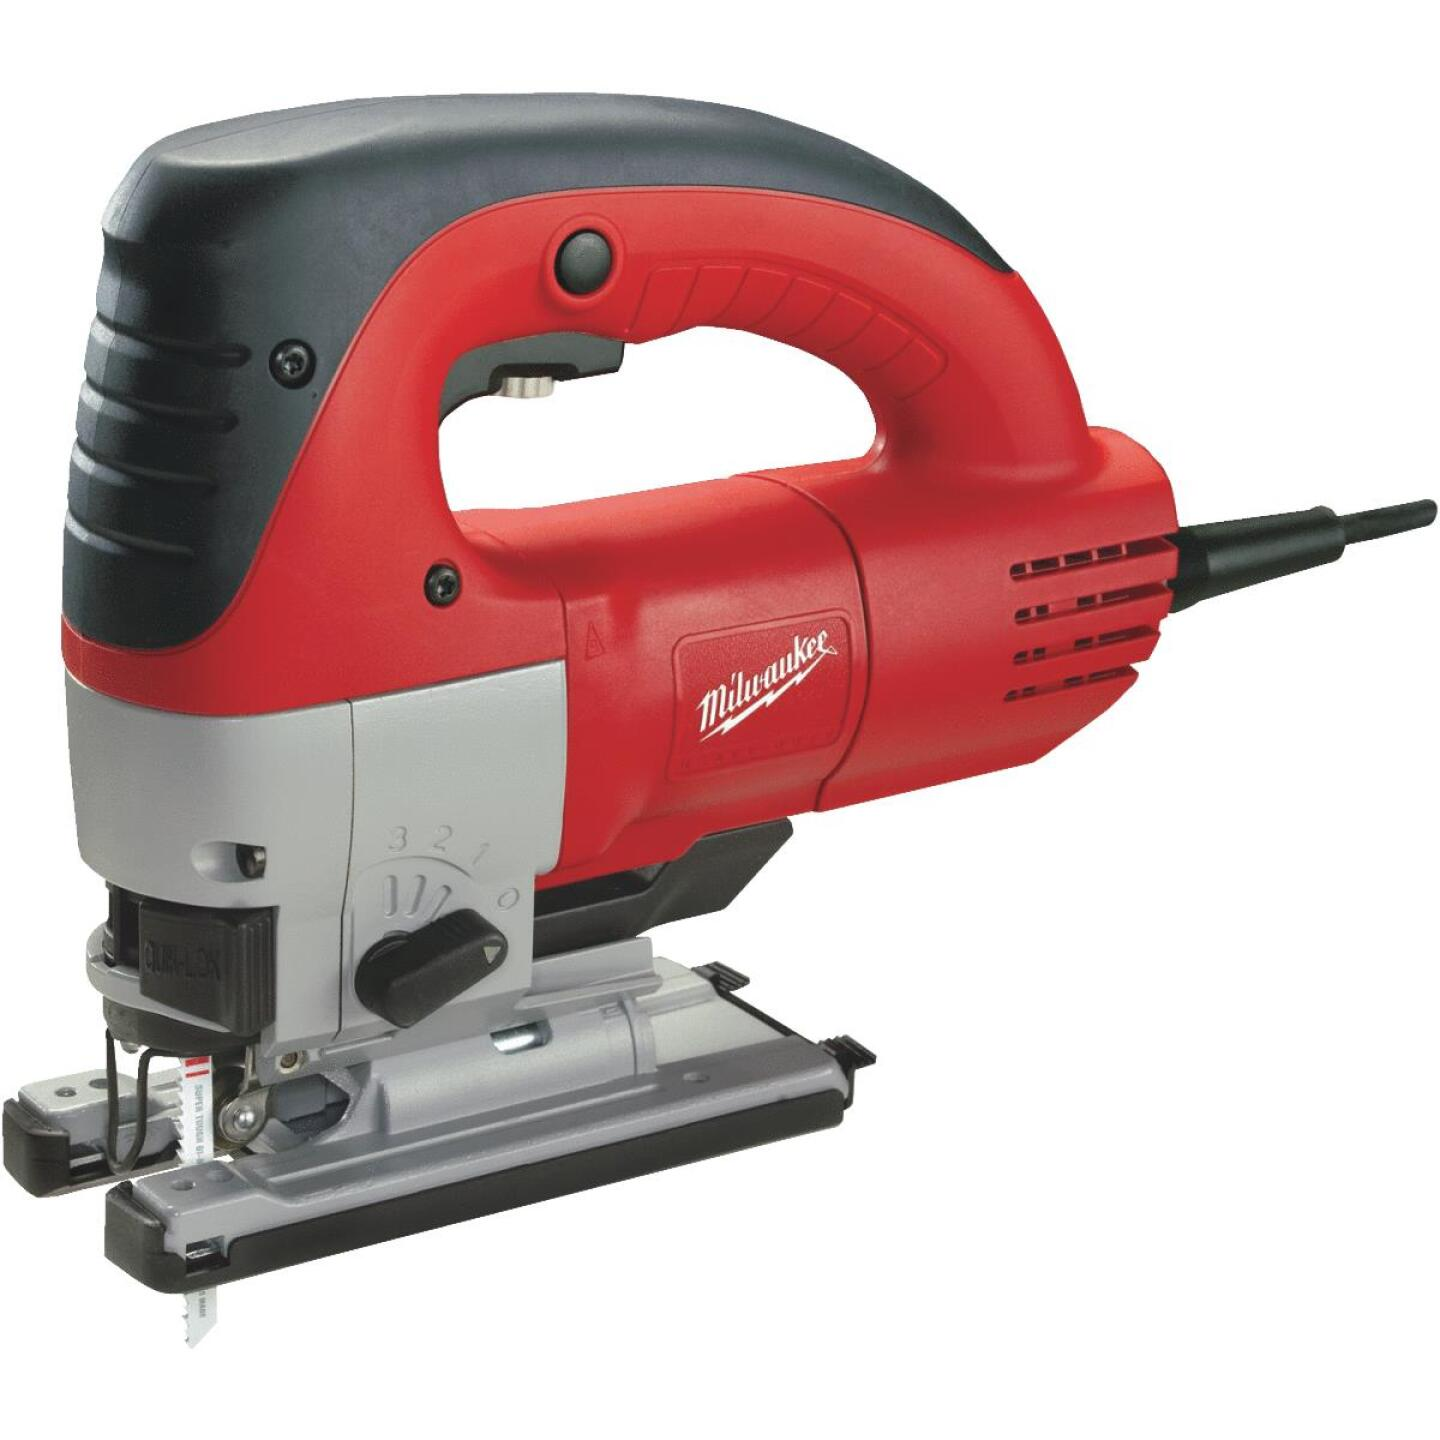 Milwaukee 6.0A 4-Position 0-3000 SPM Jig Saw Kit Image 1